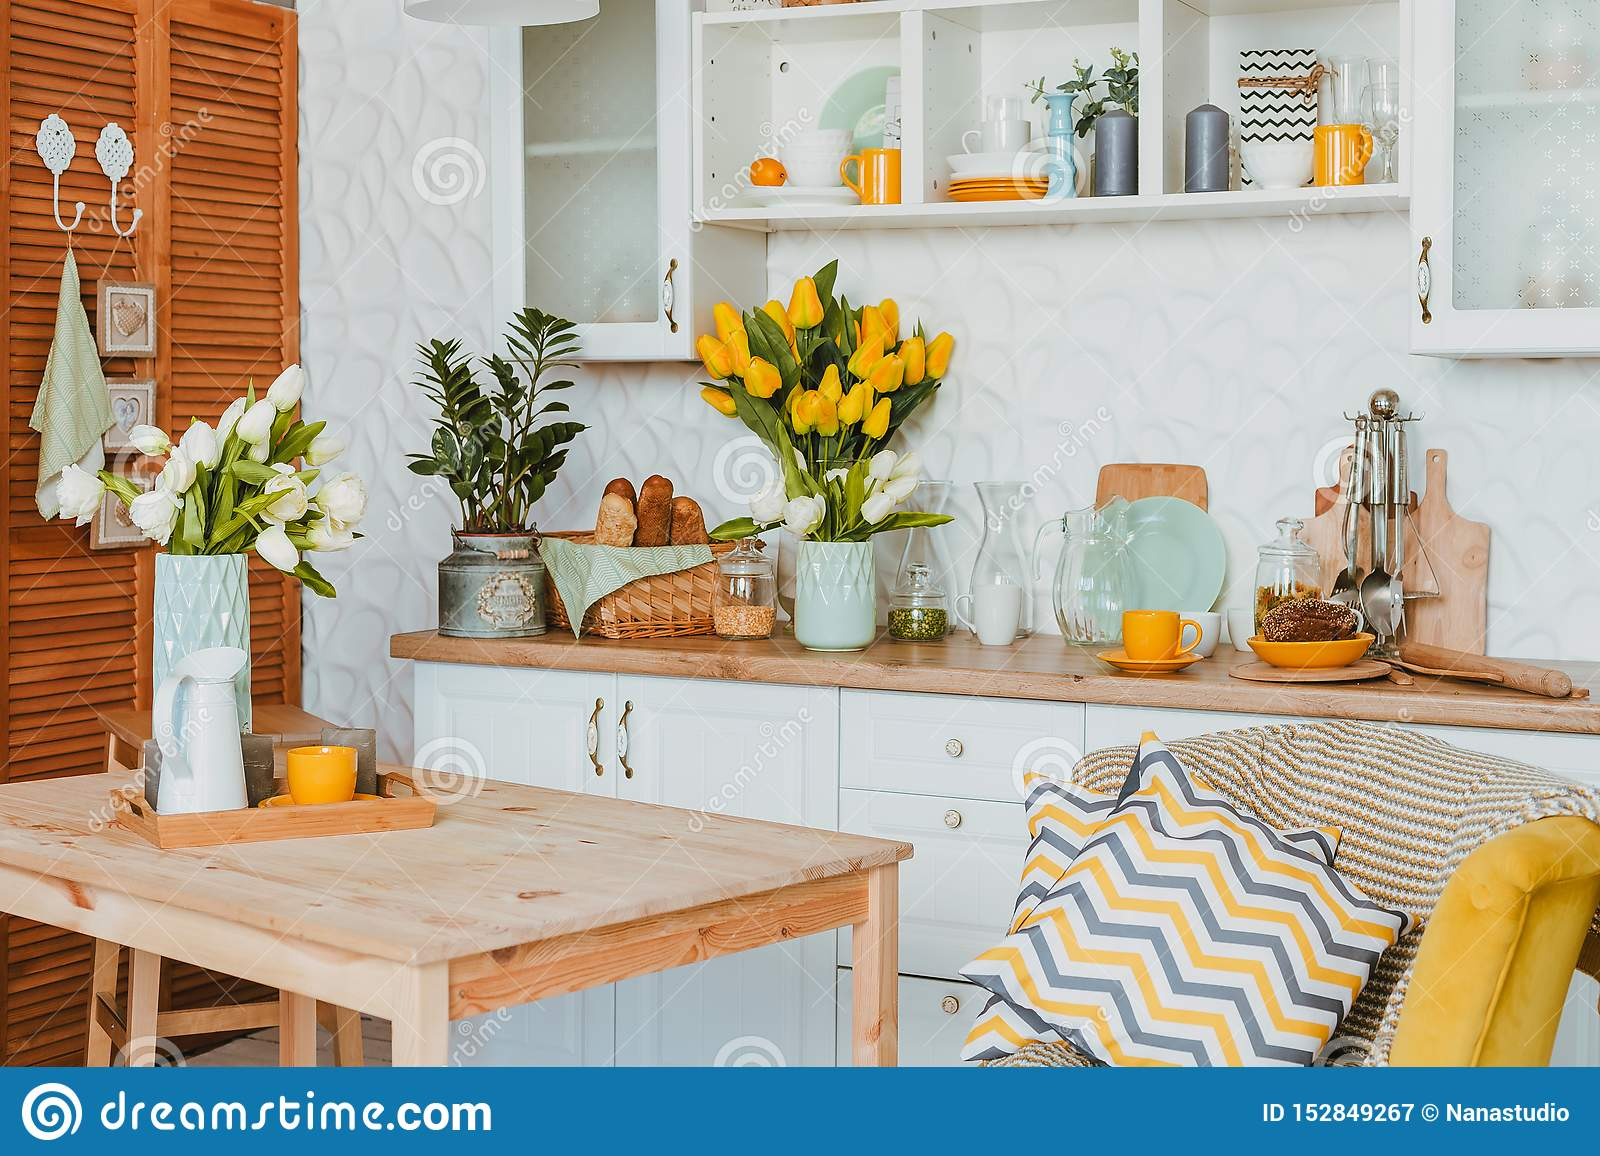 Kitchen Utensils Concept Of Home Decor Kitchen Decorated With Flowers Front View Stock Image Image Of Colorful Decoration 152849267